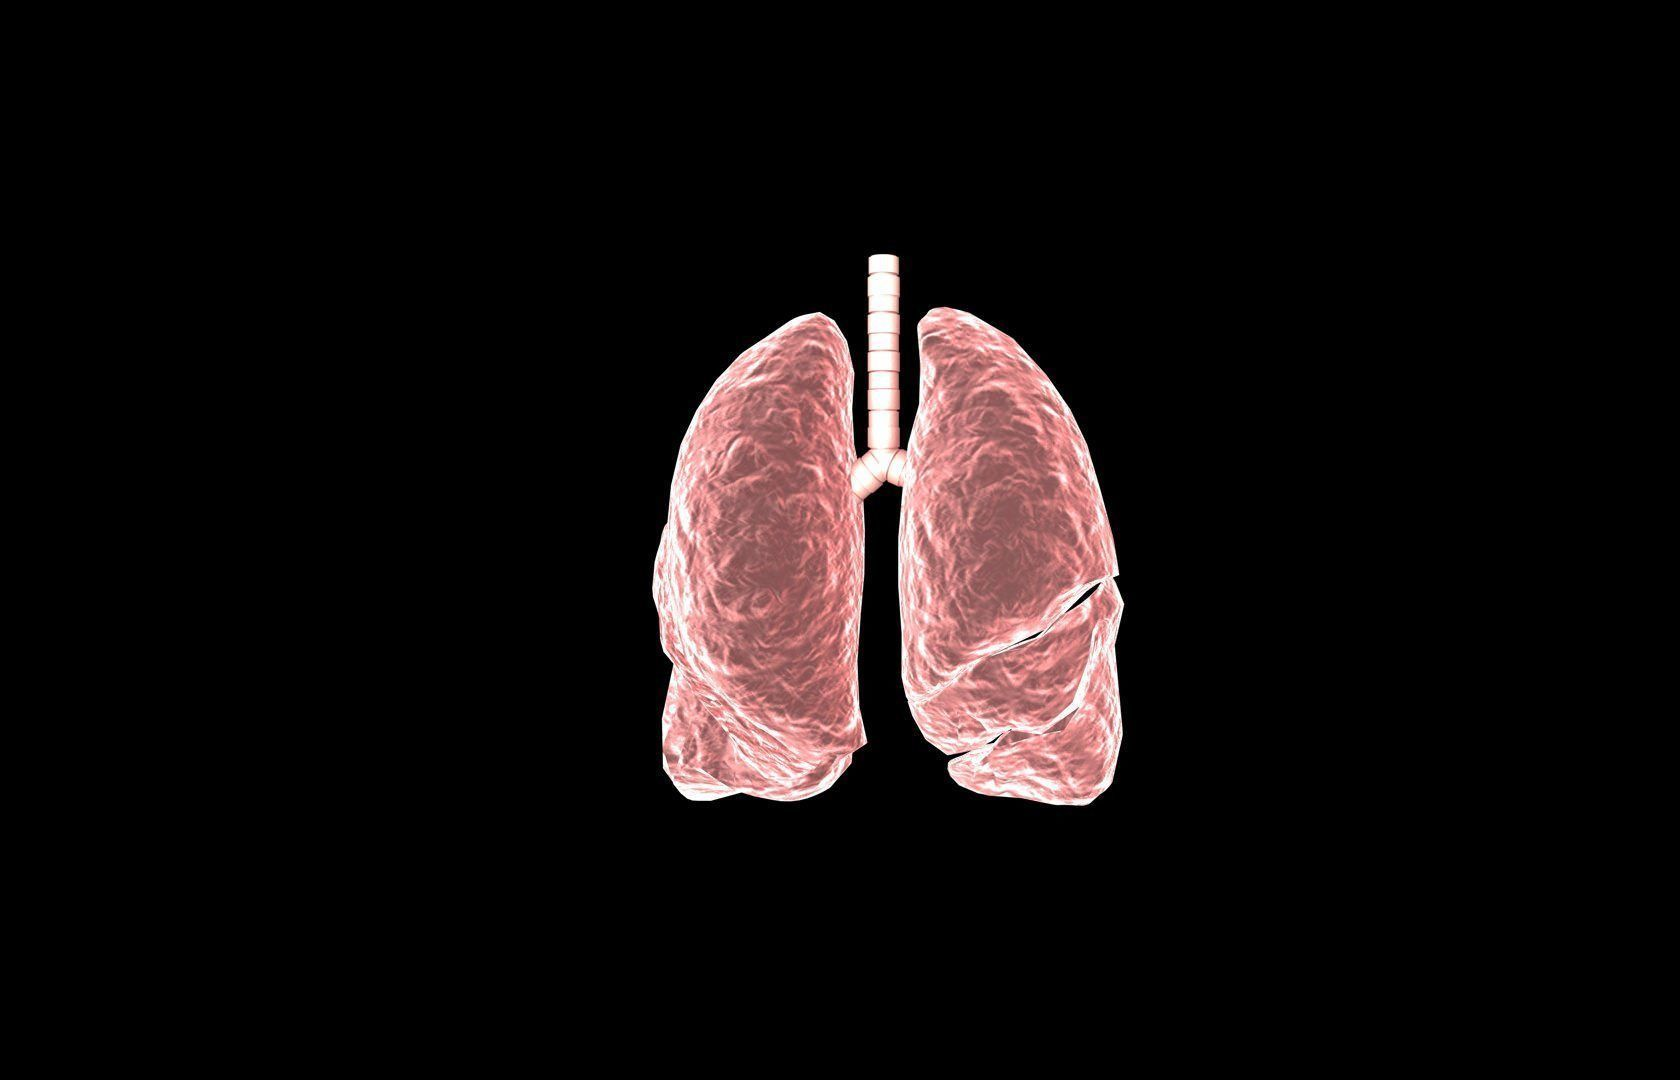 Lung 3d Model with lobes Medically accurate